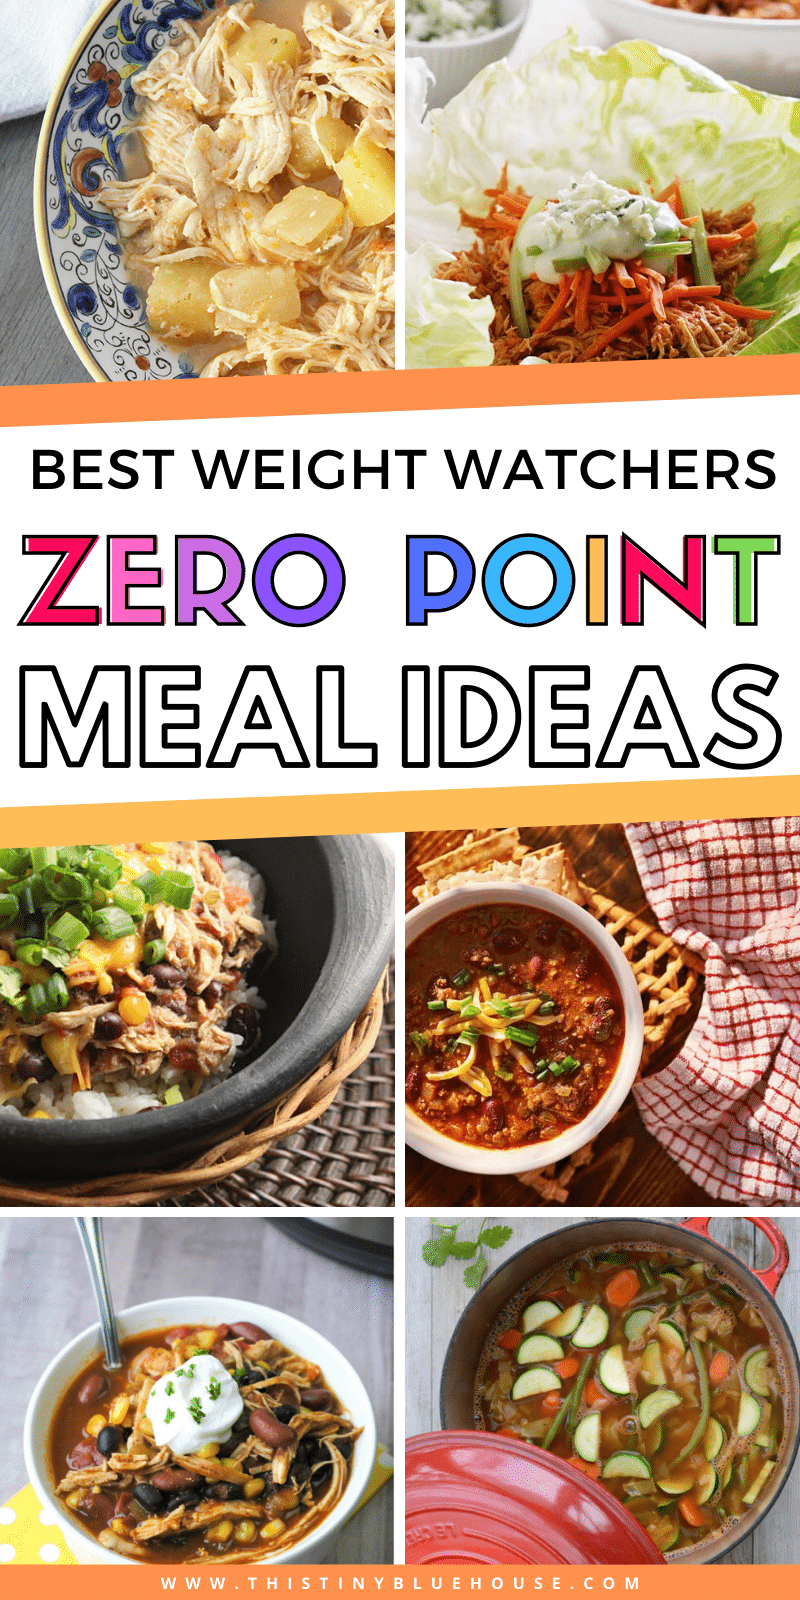 Here are 15 delicious zero point weight watchers meal ideas from the ultimate collection of Zero Point Weight Watchers Meals and Snacks. From apps to main meals and even desserts these zero point weight watchers meal ideas are guaranteed to keep your diet interesting. #weightwatchers #weightwatchersforfree #weightwatchersrecipeswithpoints #weightwatchersfreestyle #weightwatcherssnacks #weightwatchersdesserts #weightwatcherszeropoint #weightwatcherzeropointrecipes #weightwatcherszeropointmeals #weightwatcherszeropointsnacks #weightwatcherszeropointdesserts